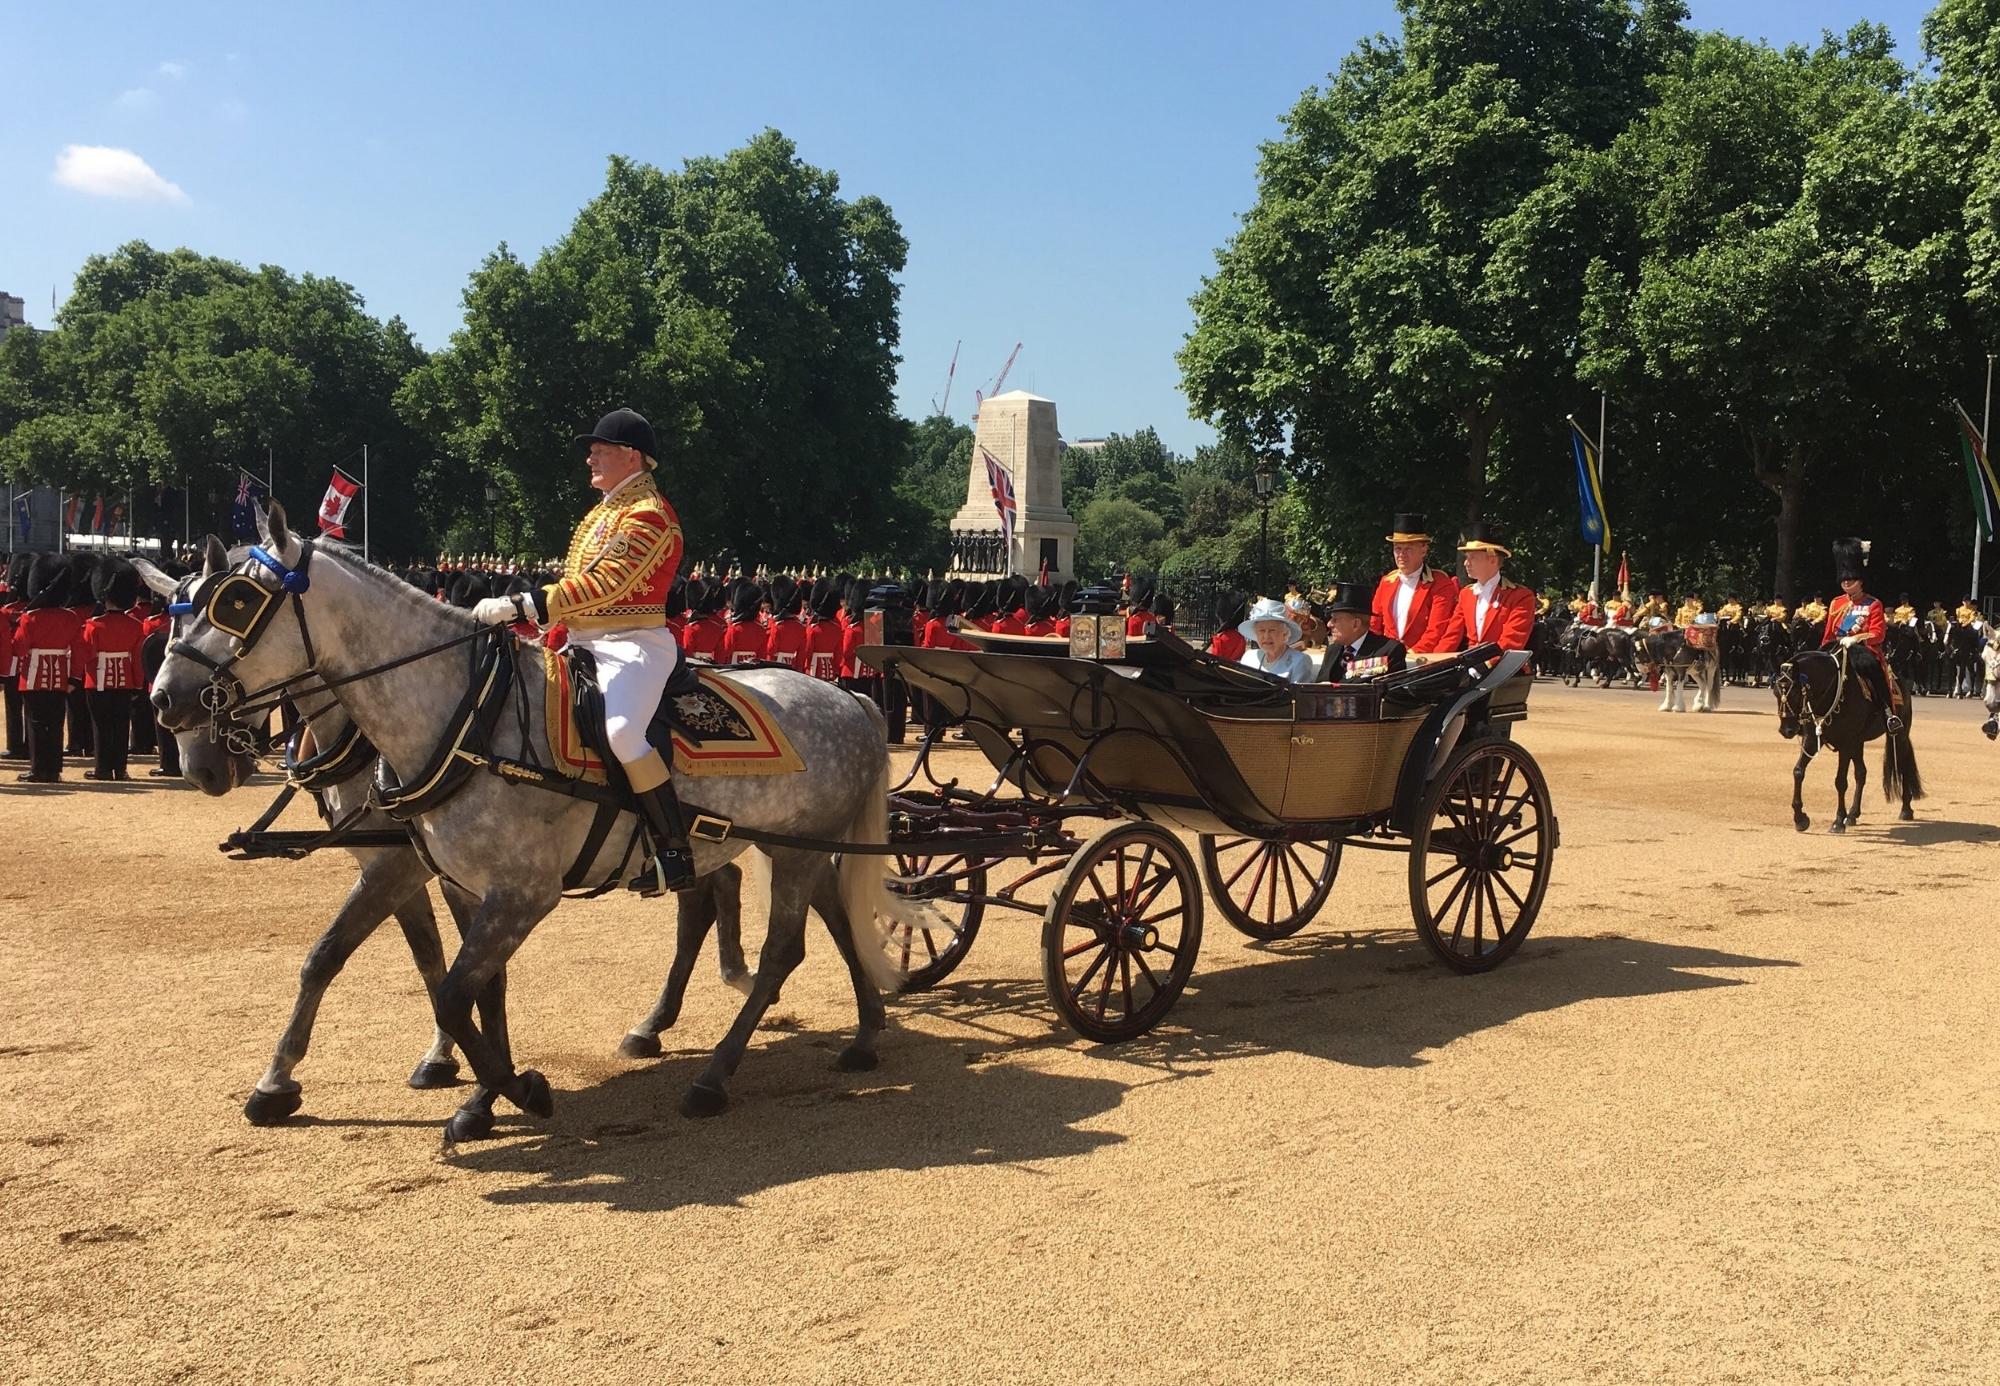 The Queen and Prince Philip arriving at Royal Horse Guards during Trooping Of Colour